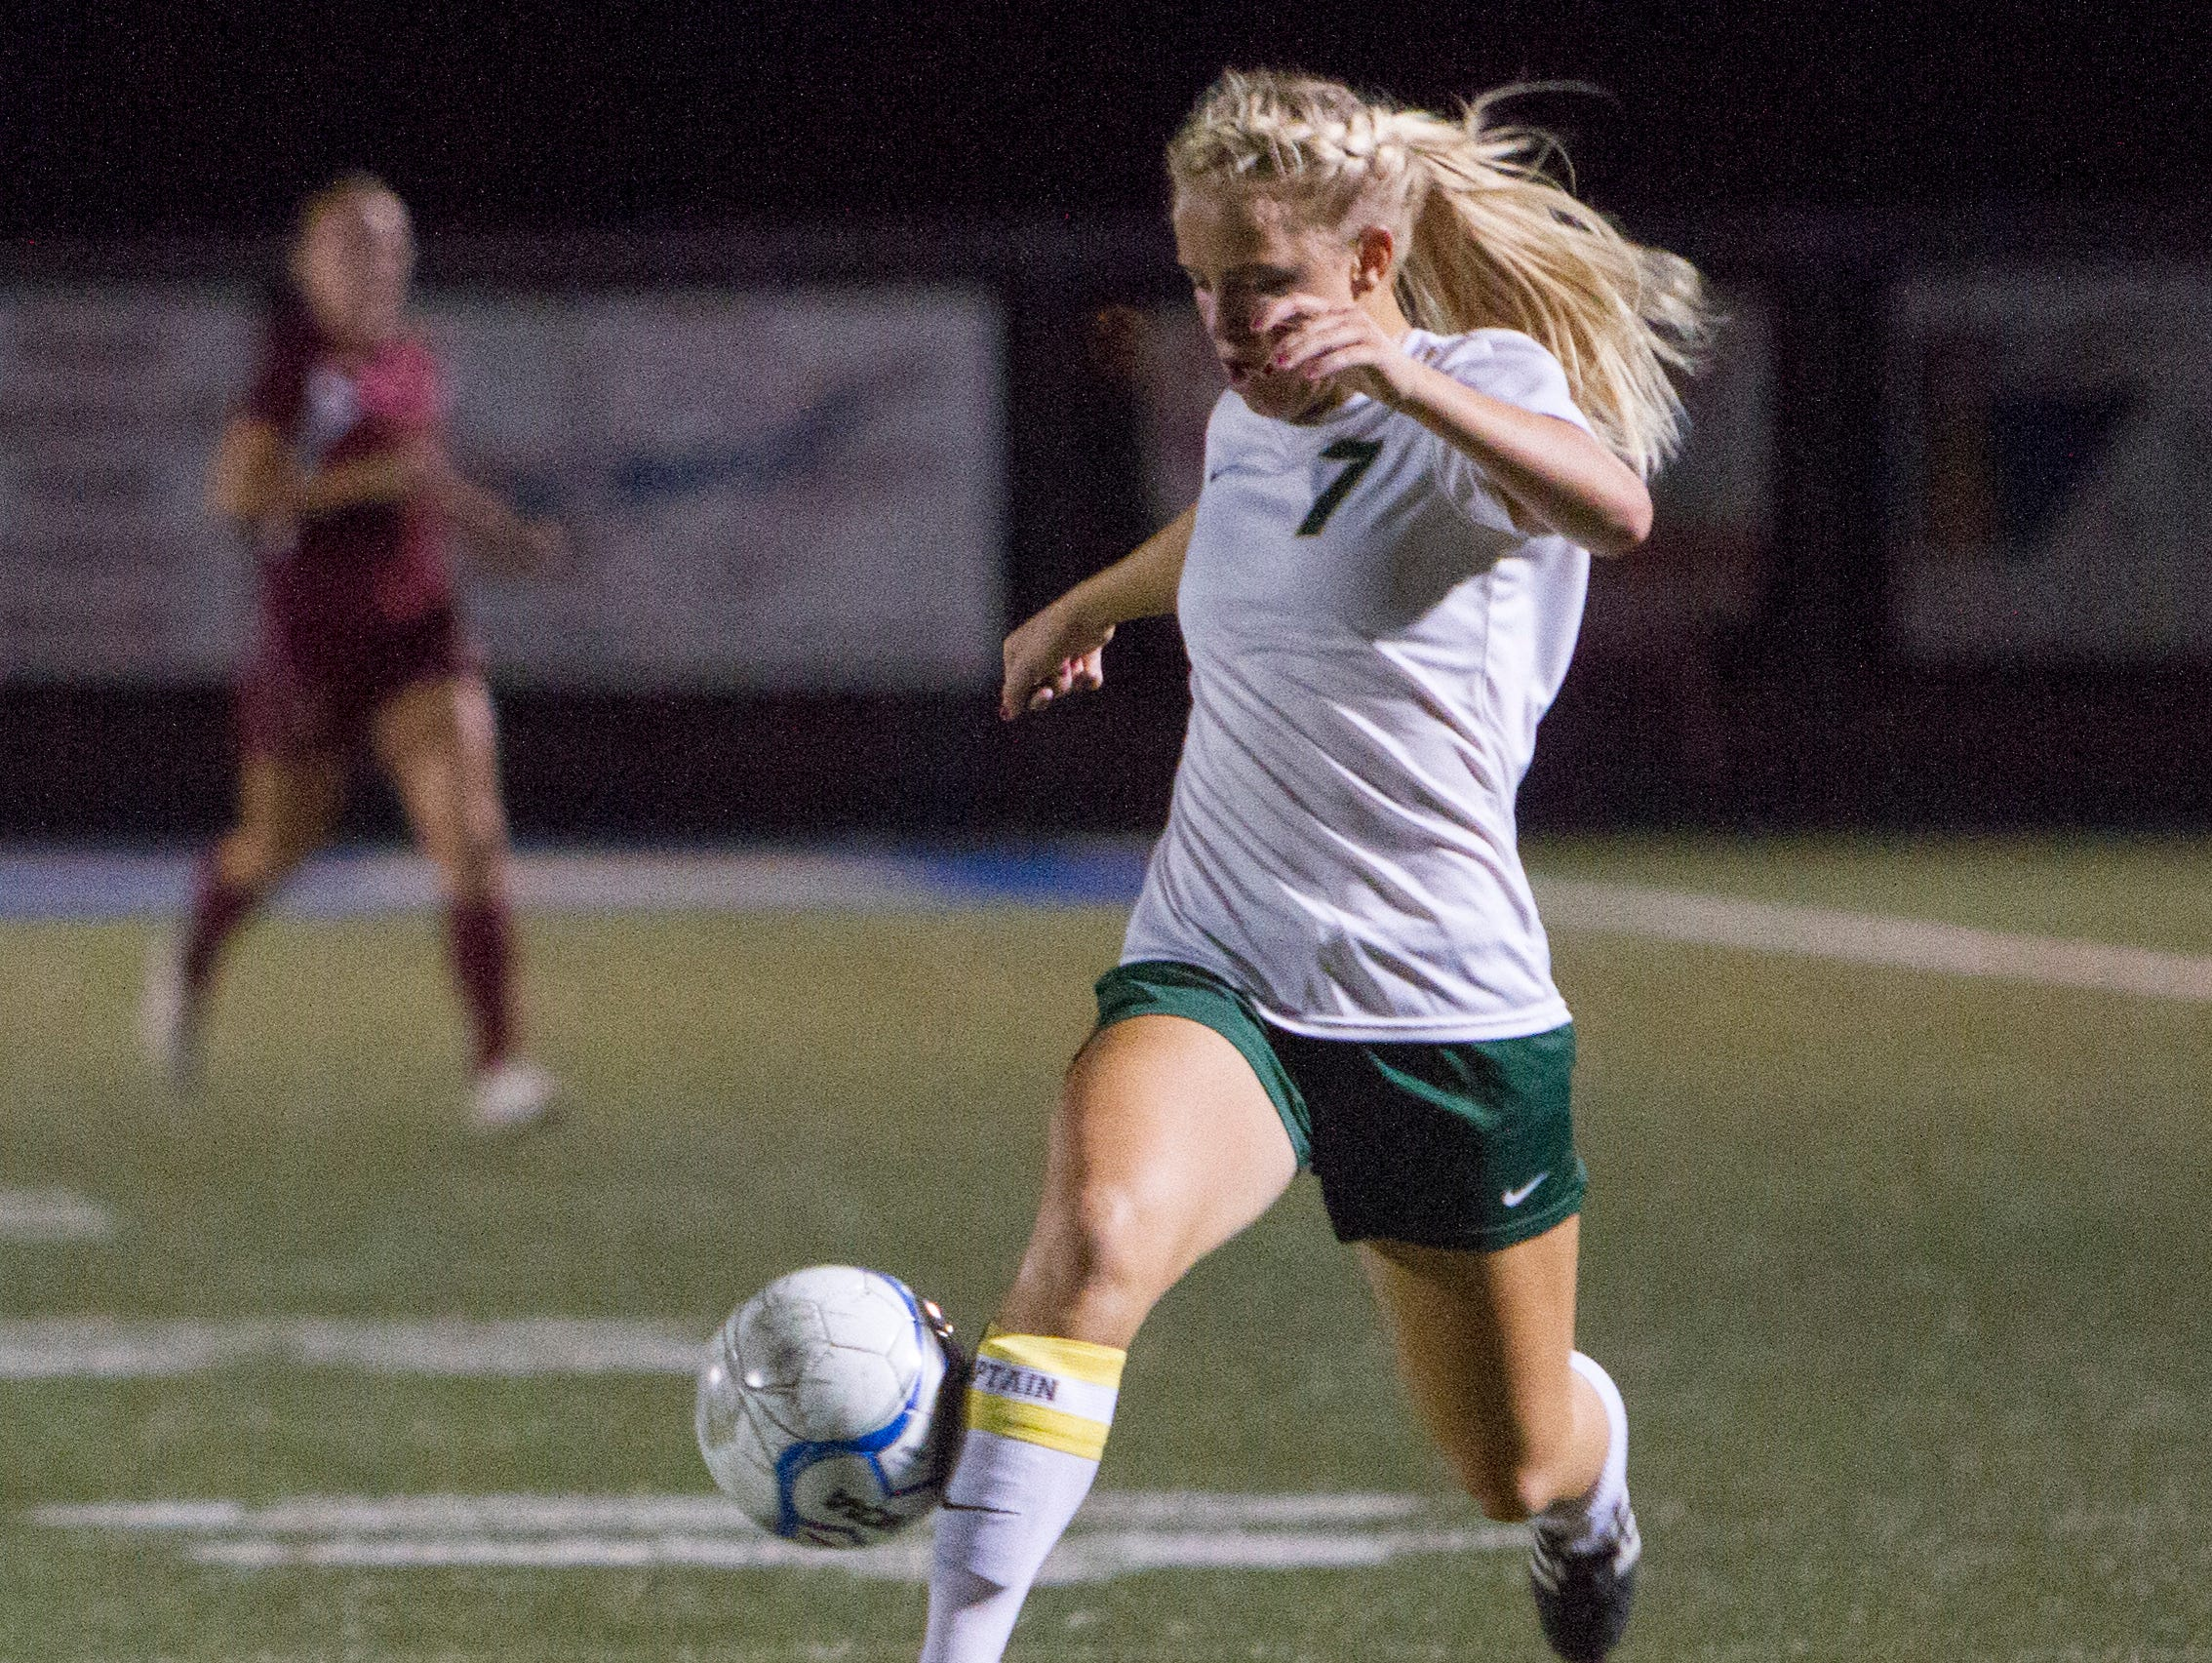 Snow Canyon's Mishayla Fausett (pictured) scored the game-winning goal against Cedar in overtime Tuesday at Snow Canyon High School.